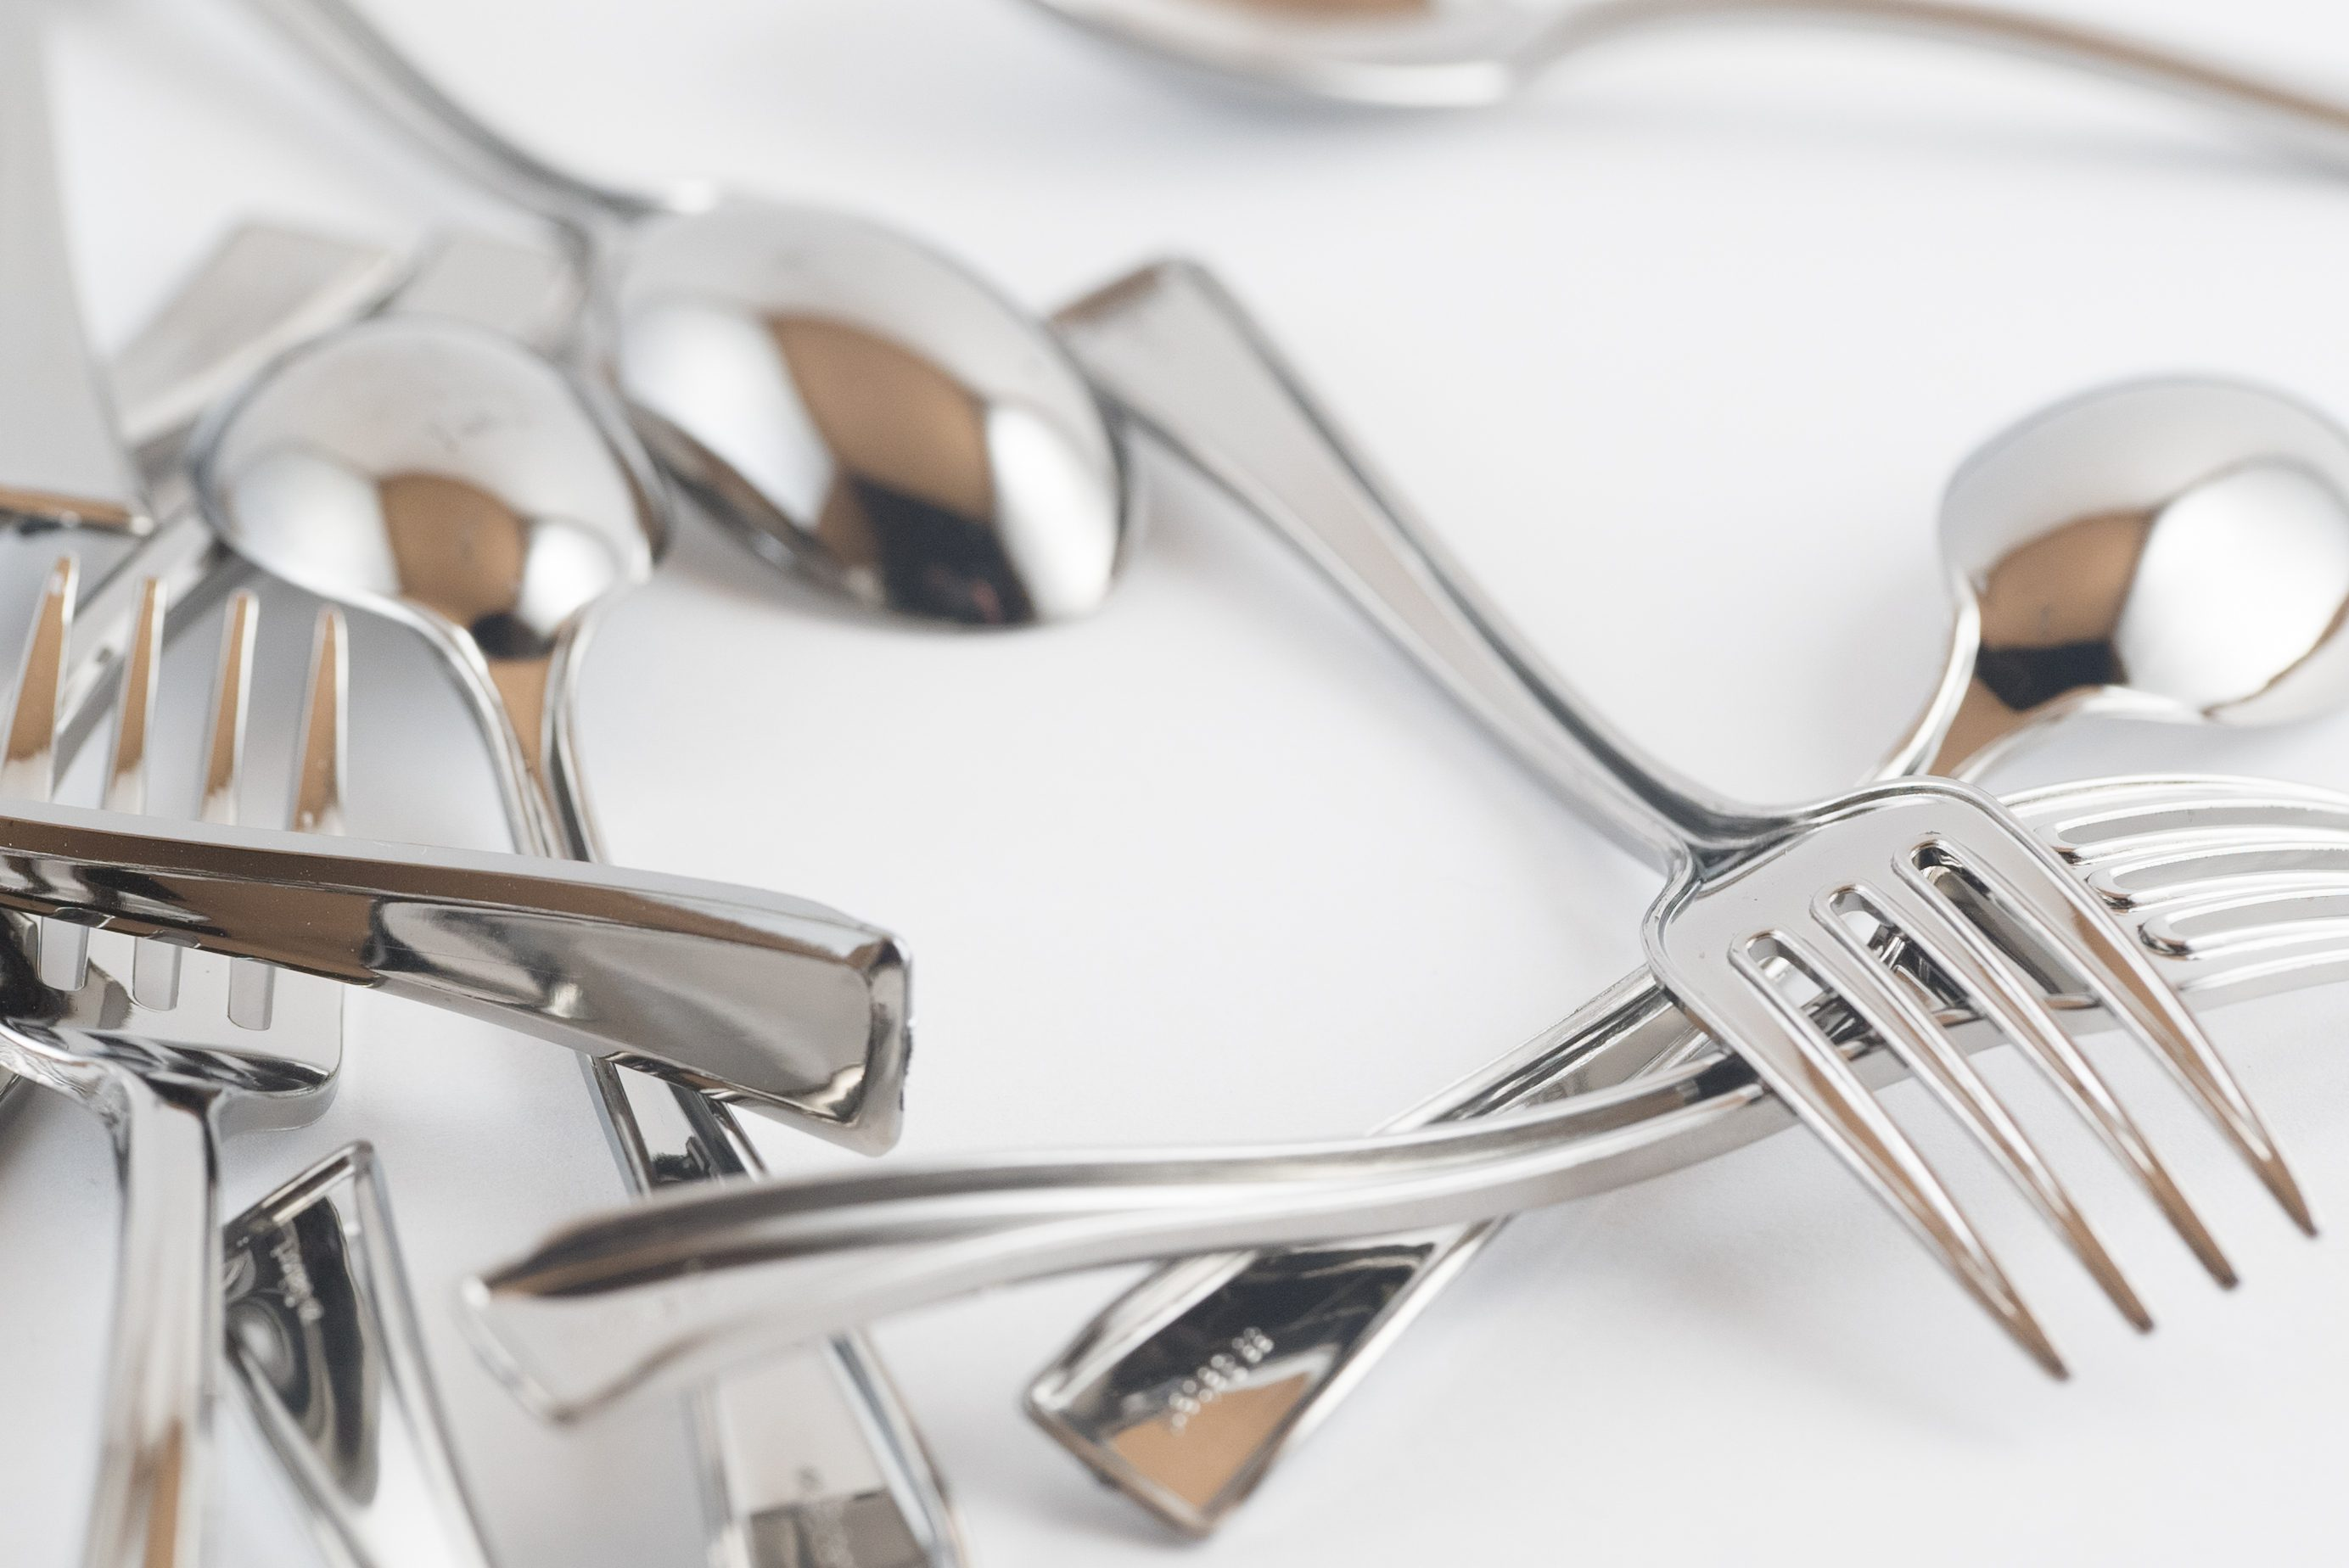 Small Plastic Silver Cutlery - Assorted Macro Images 1